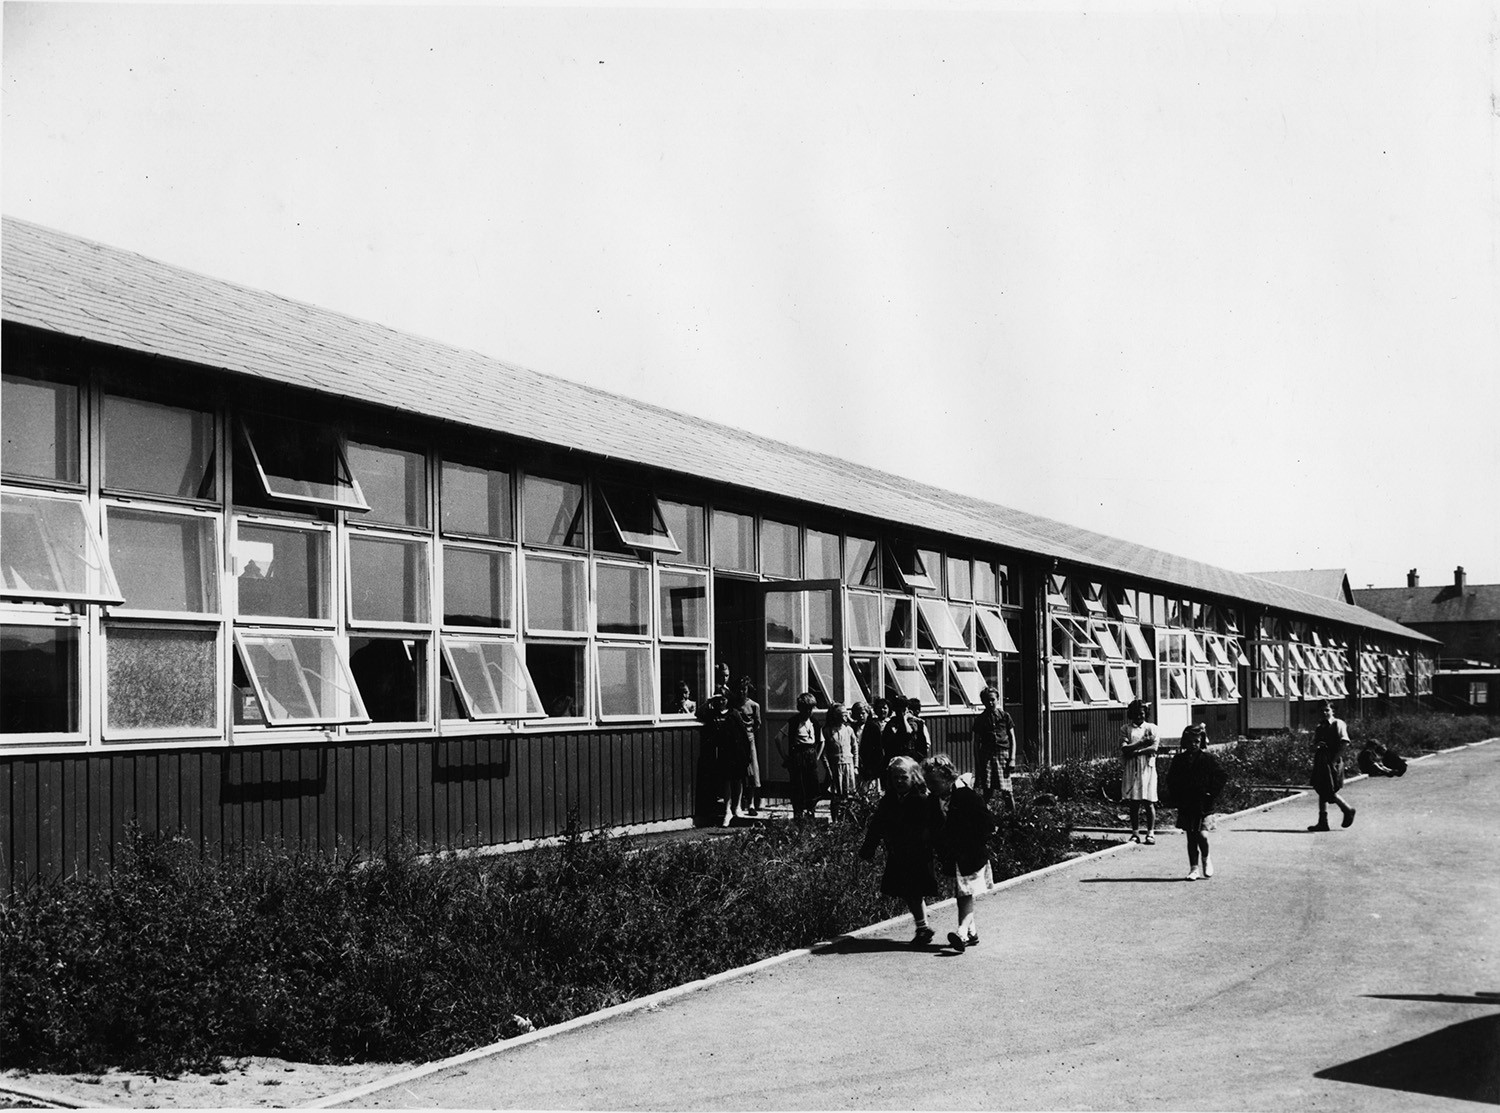 An old black and white photo of a Puutalo wooden school. The school's wall has many windows right next to each other and some of them are open.